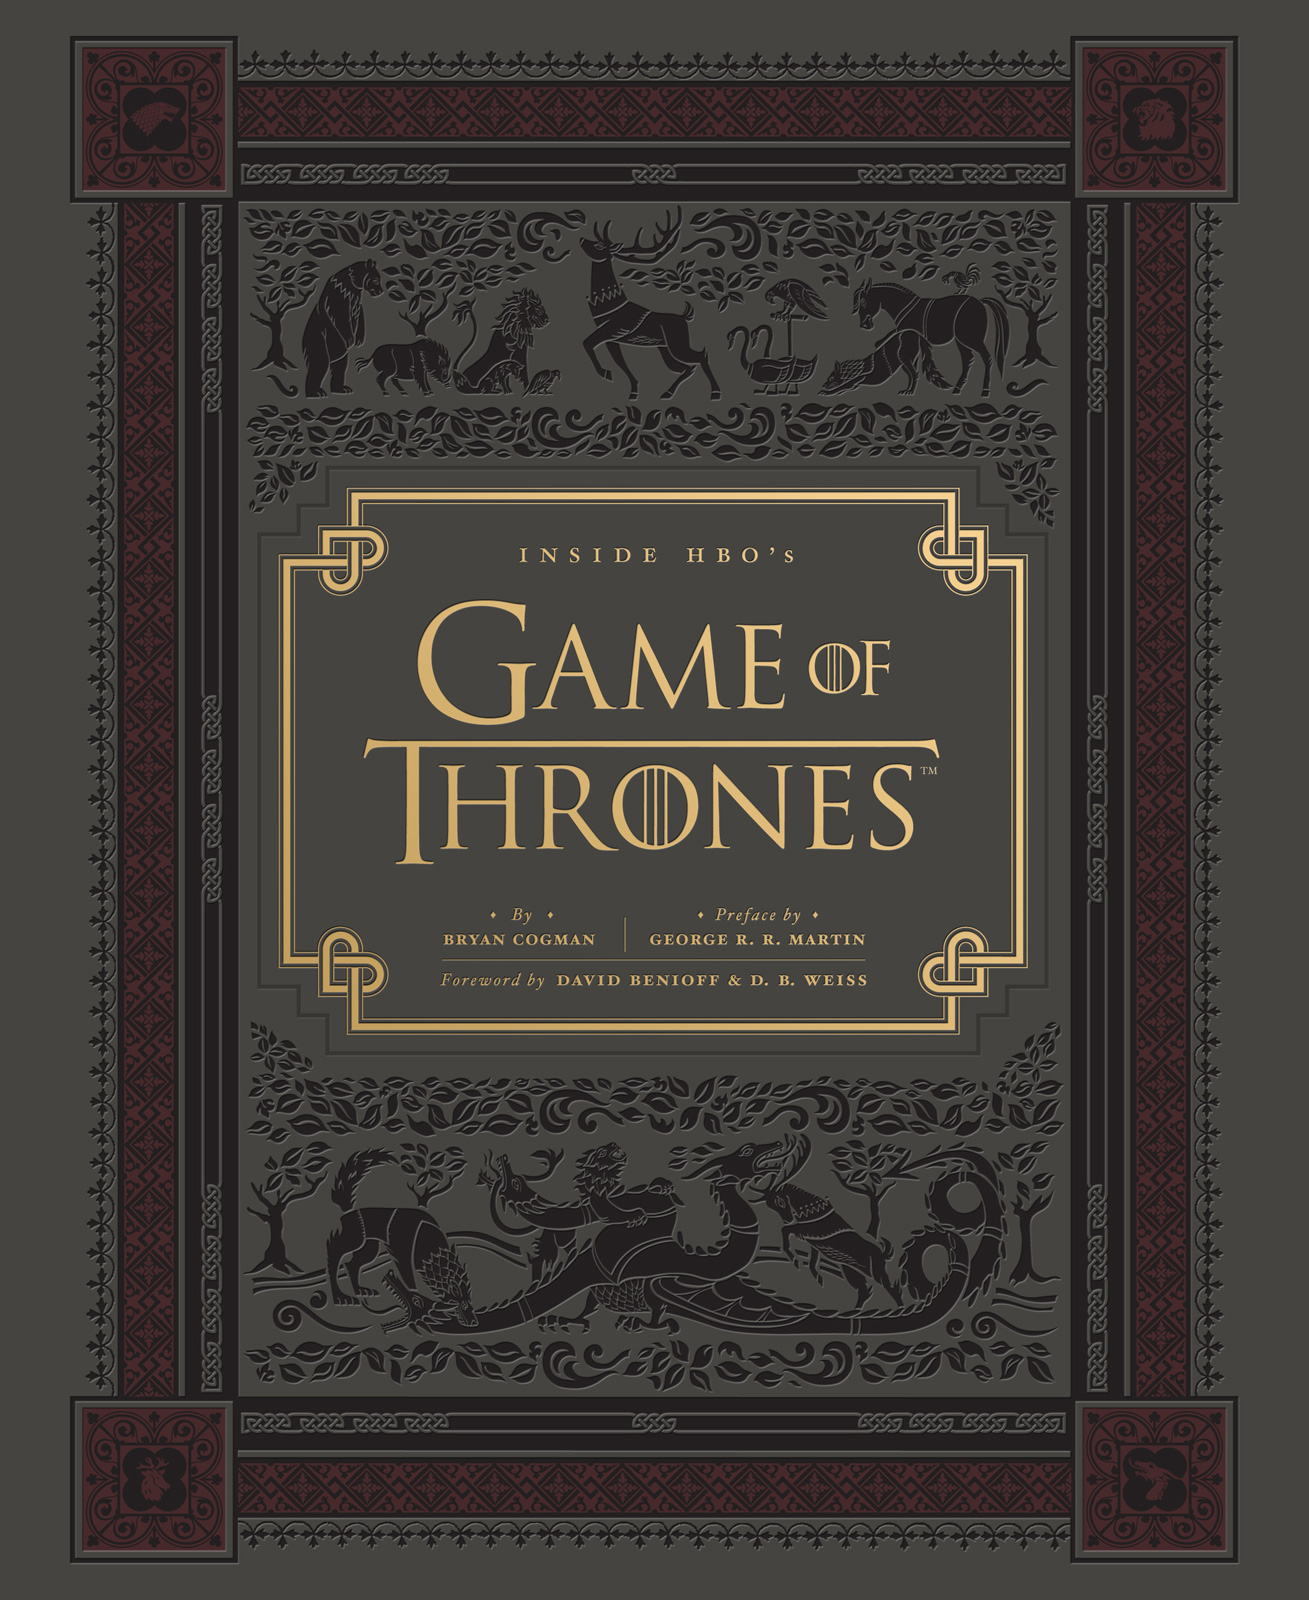 Inside HBO's Game of Thrones By: Bryan Cogman,George R.R. Martin